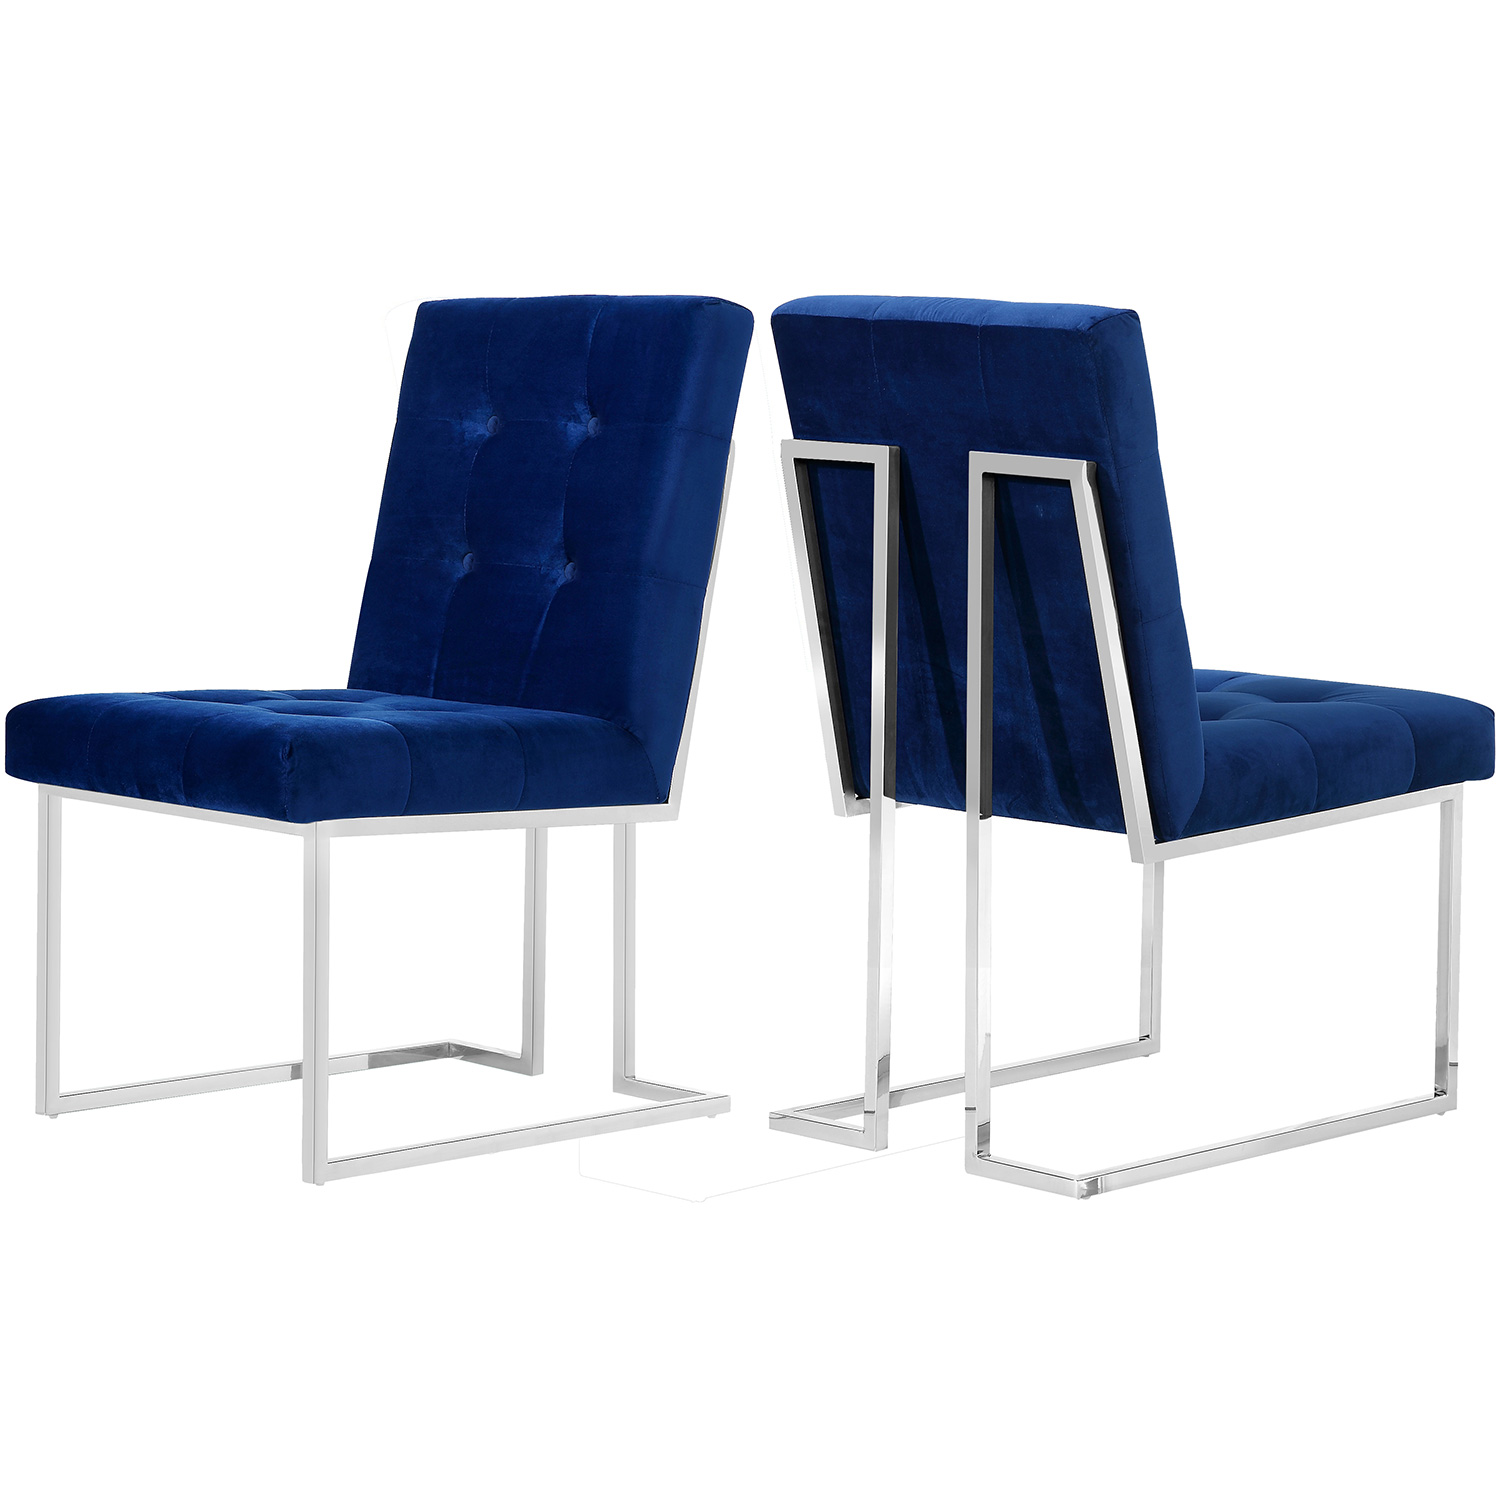 Meridian 731navy C Alexis Dining Chair In Tufted Navy